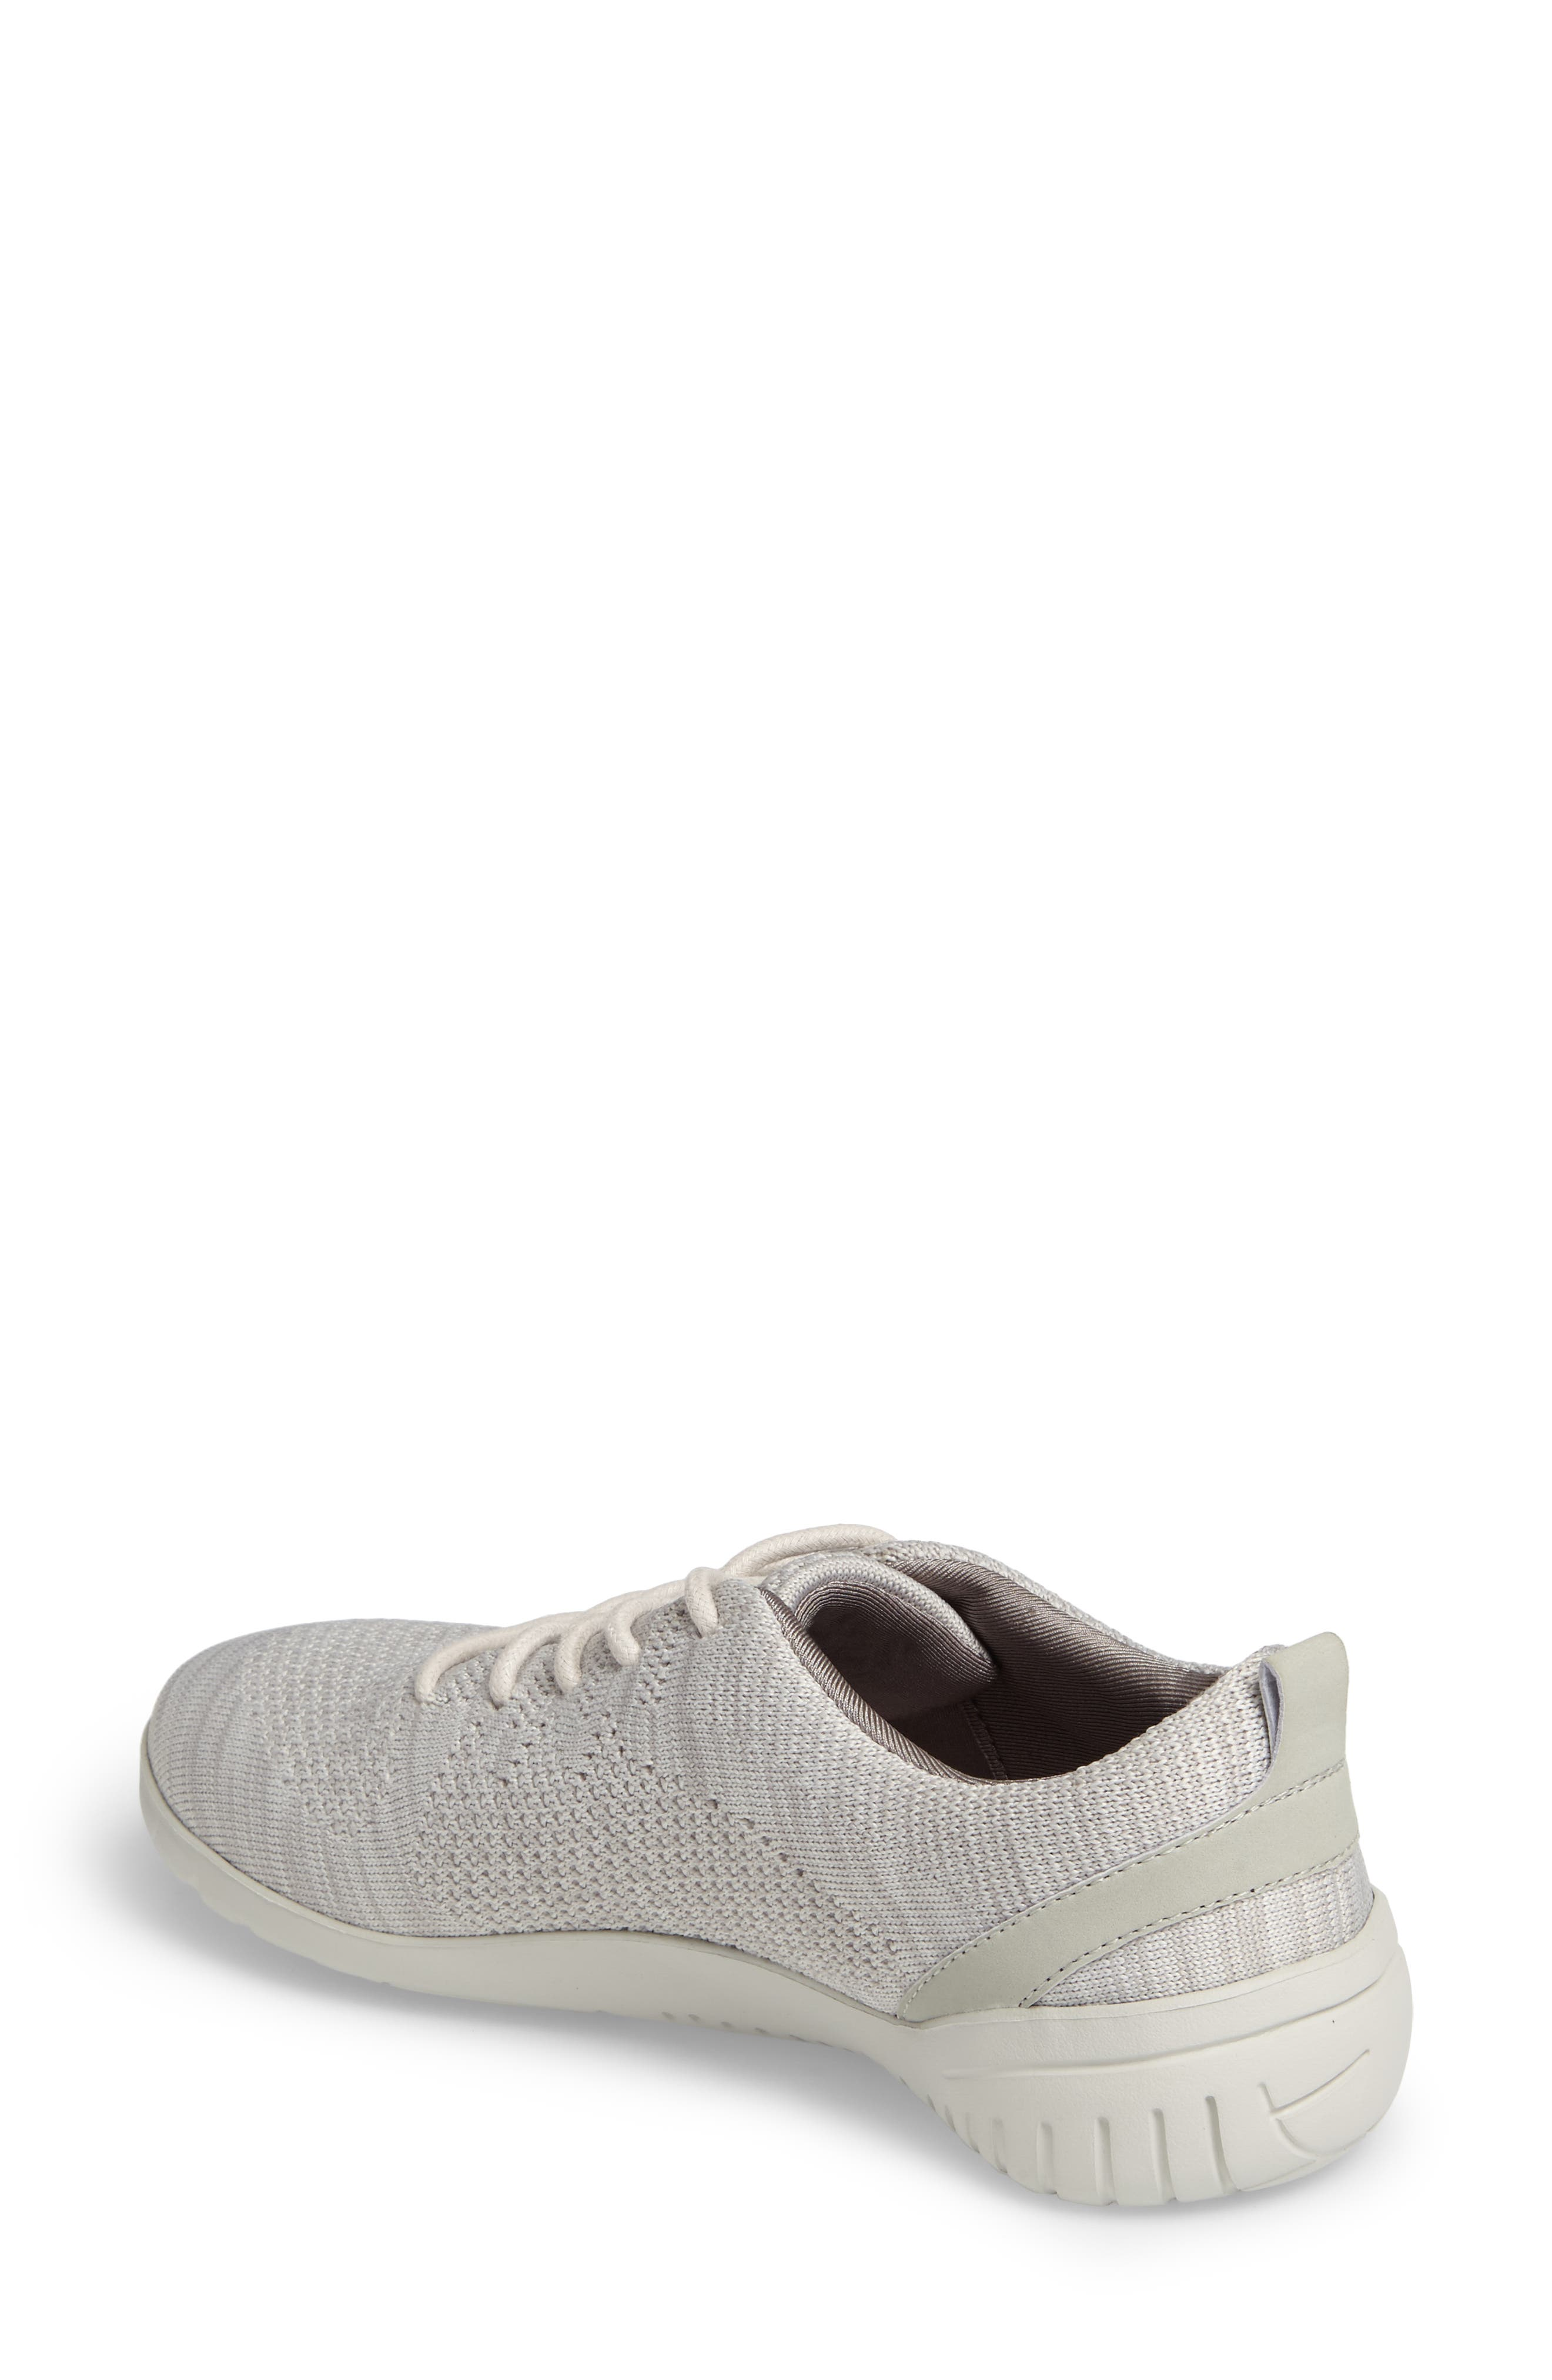 Raelyn Knit Sneaker,                             Alternate thumbnail 2, color,                             020